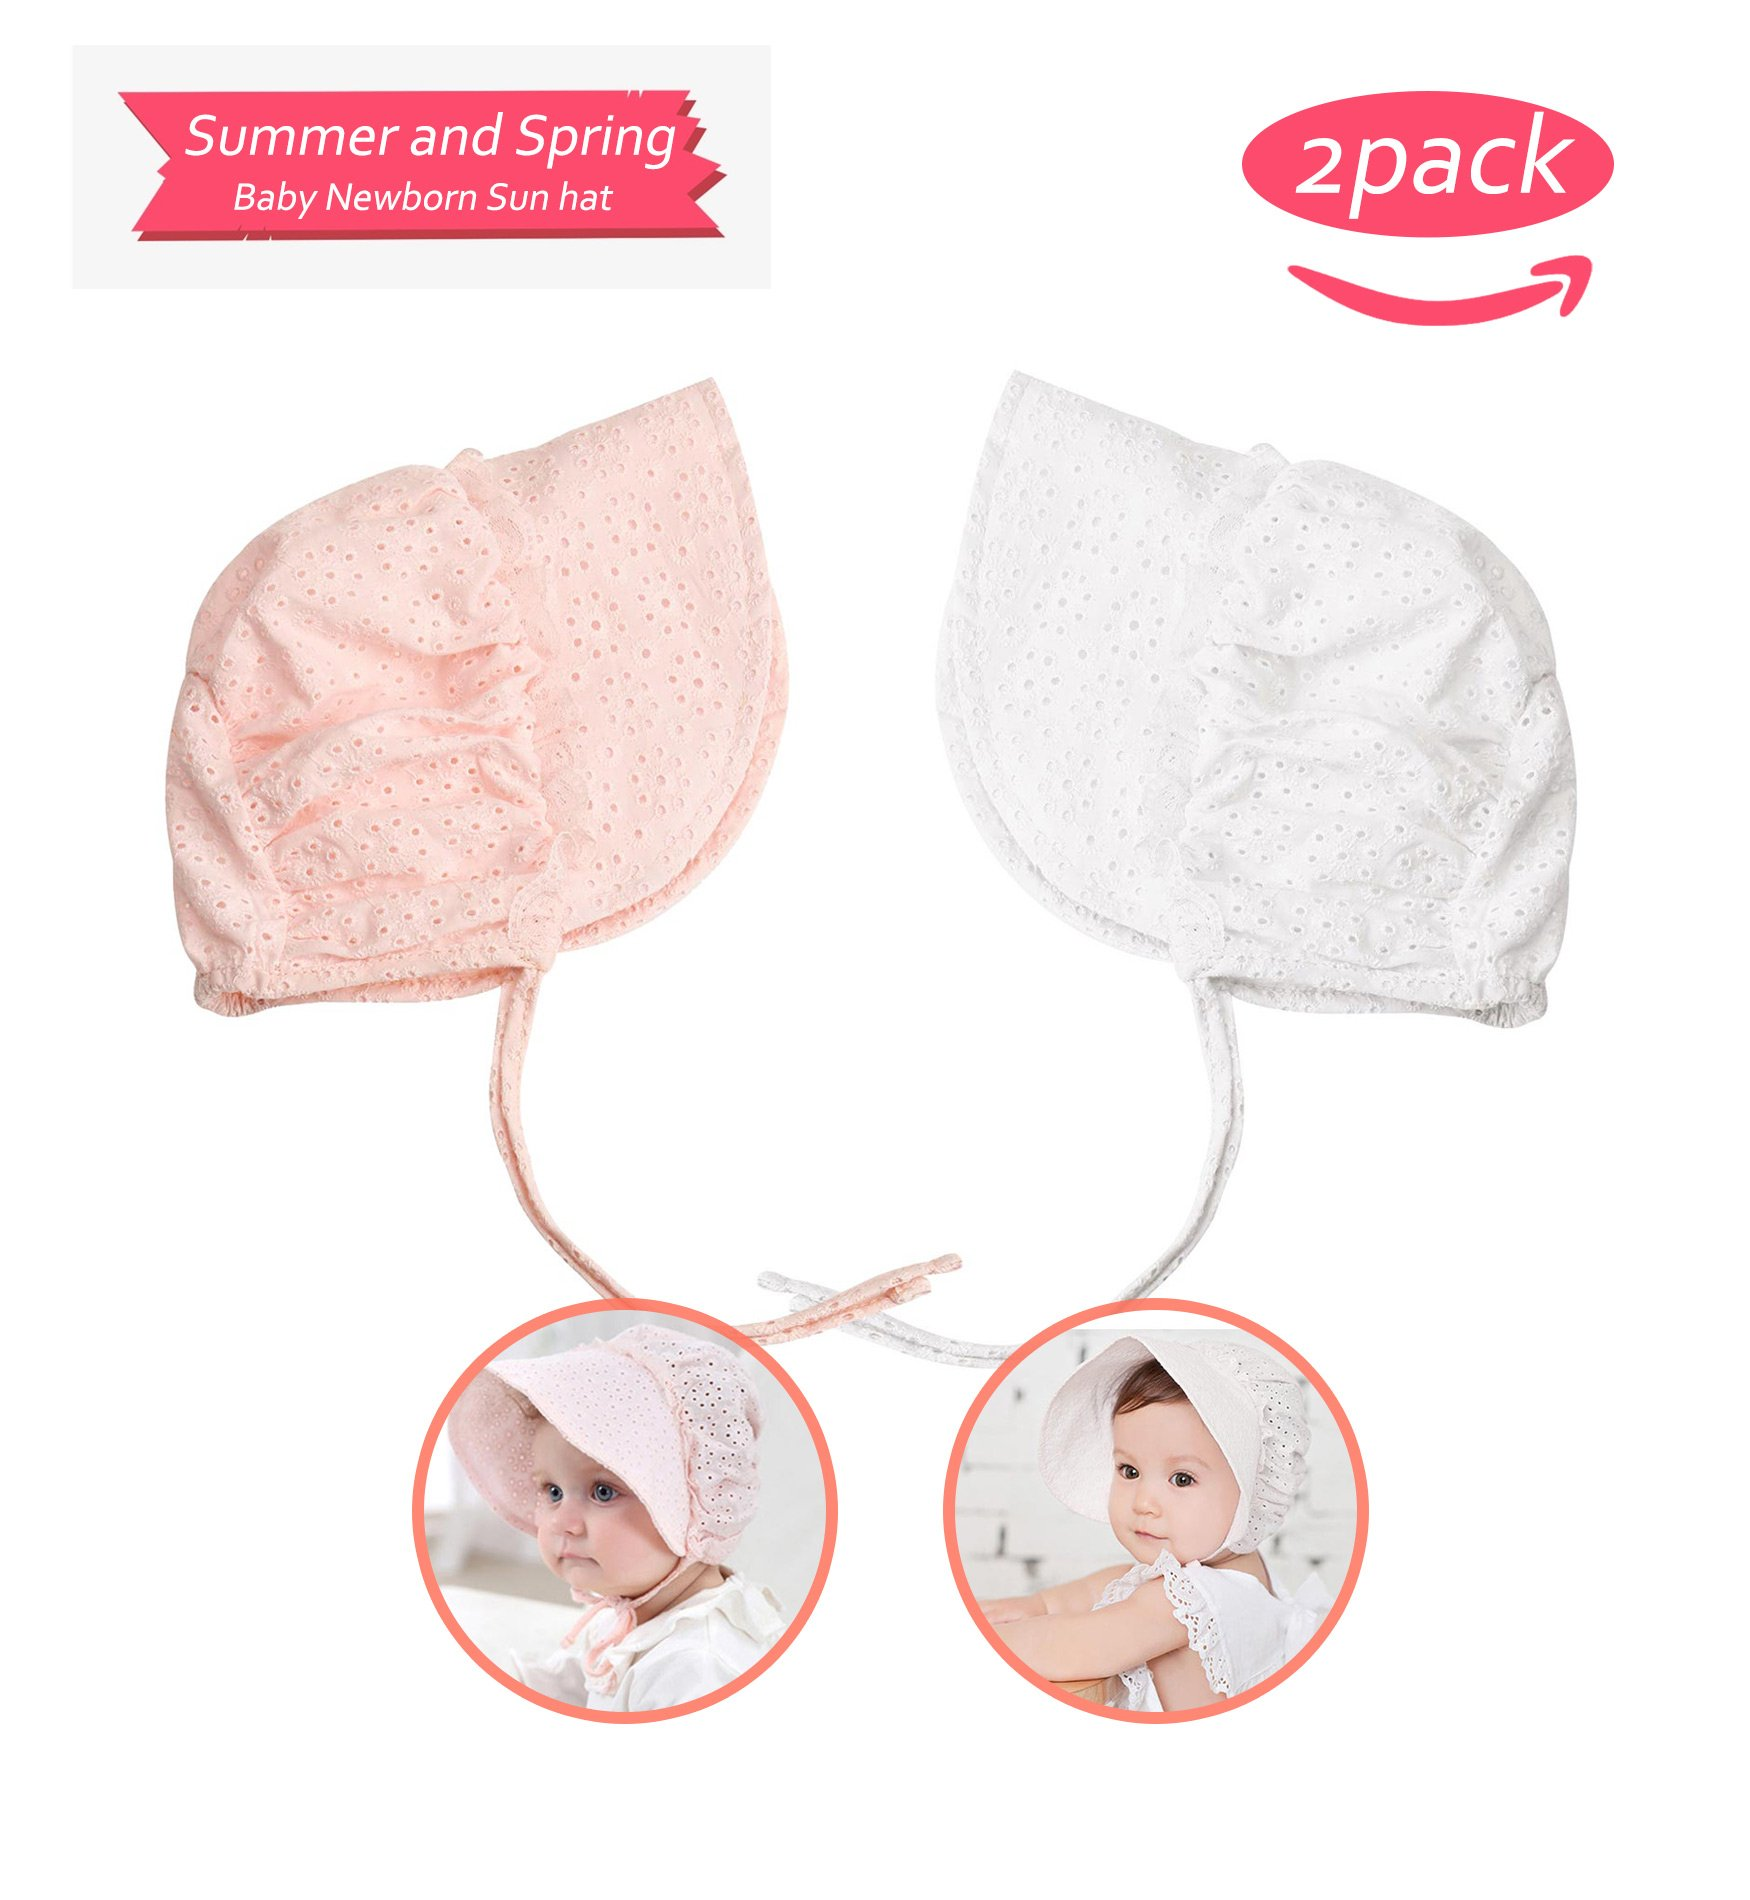 Sumolux Summer and Spring Baby Newborn Sweet Lace Princess Fishing Hat Hollow Court Cap Sun Hats